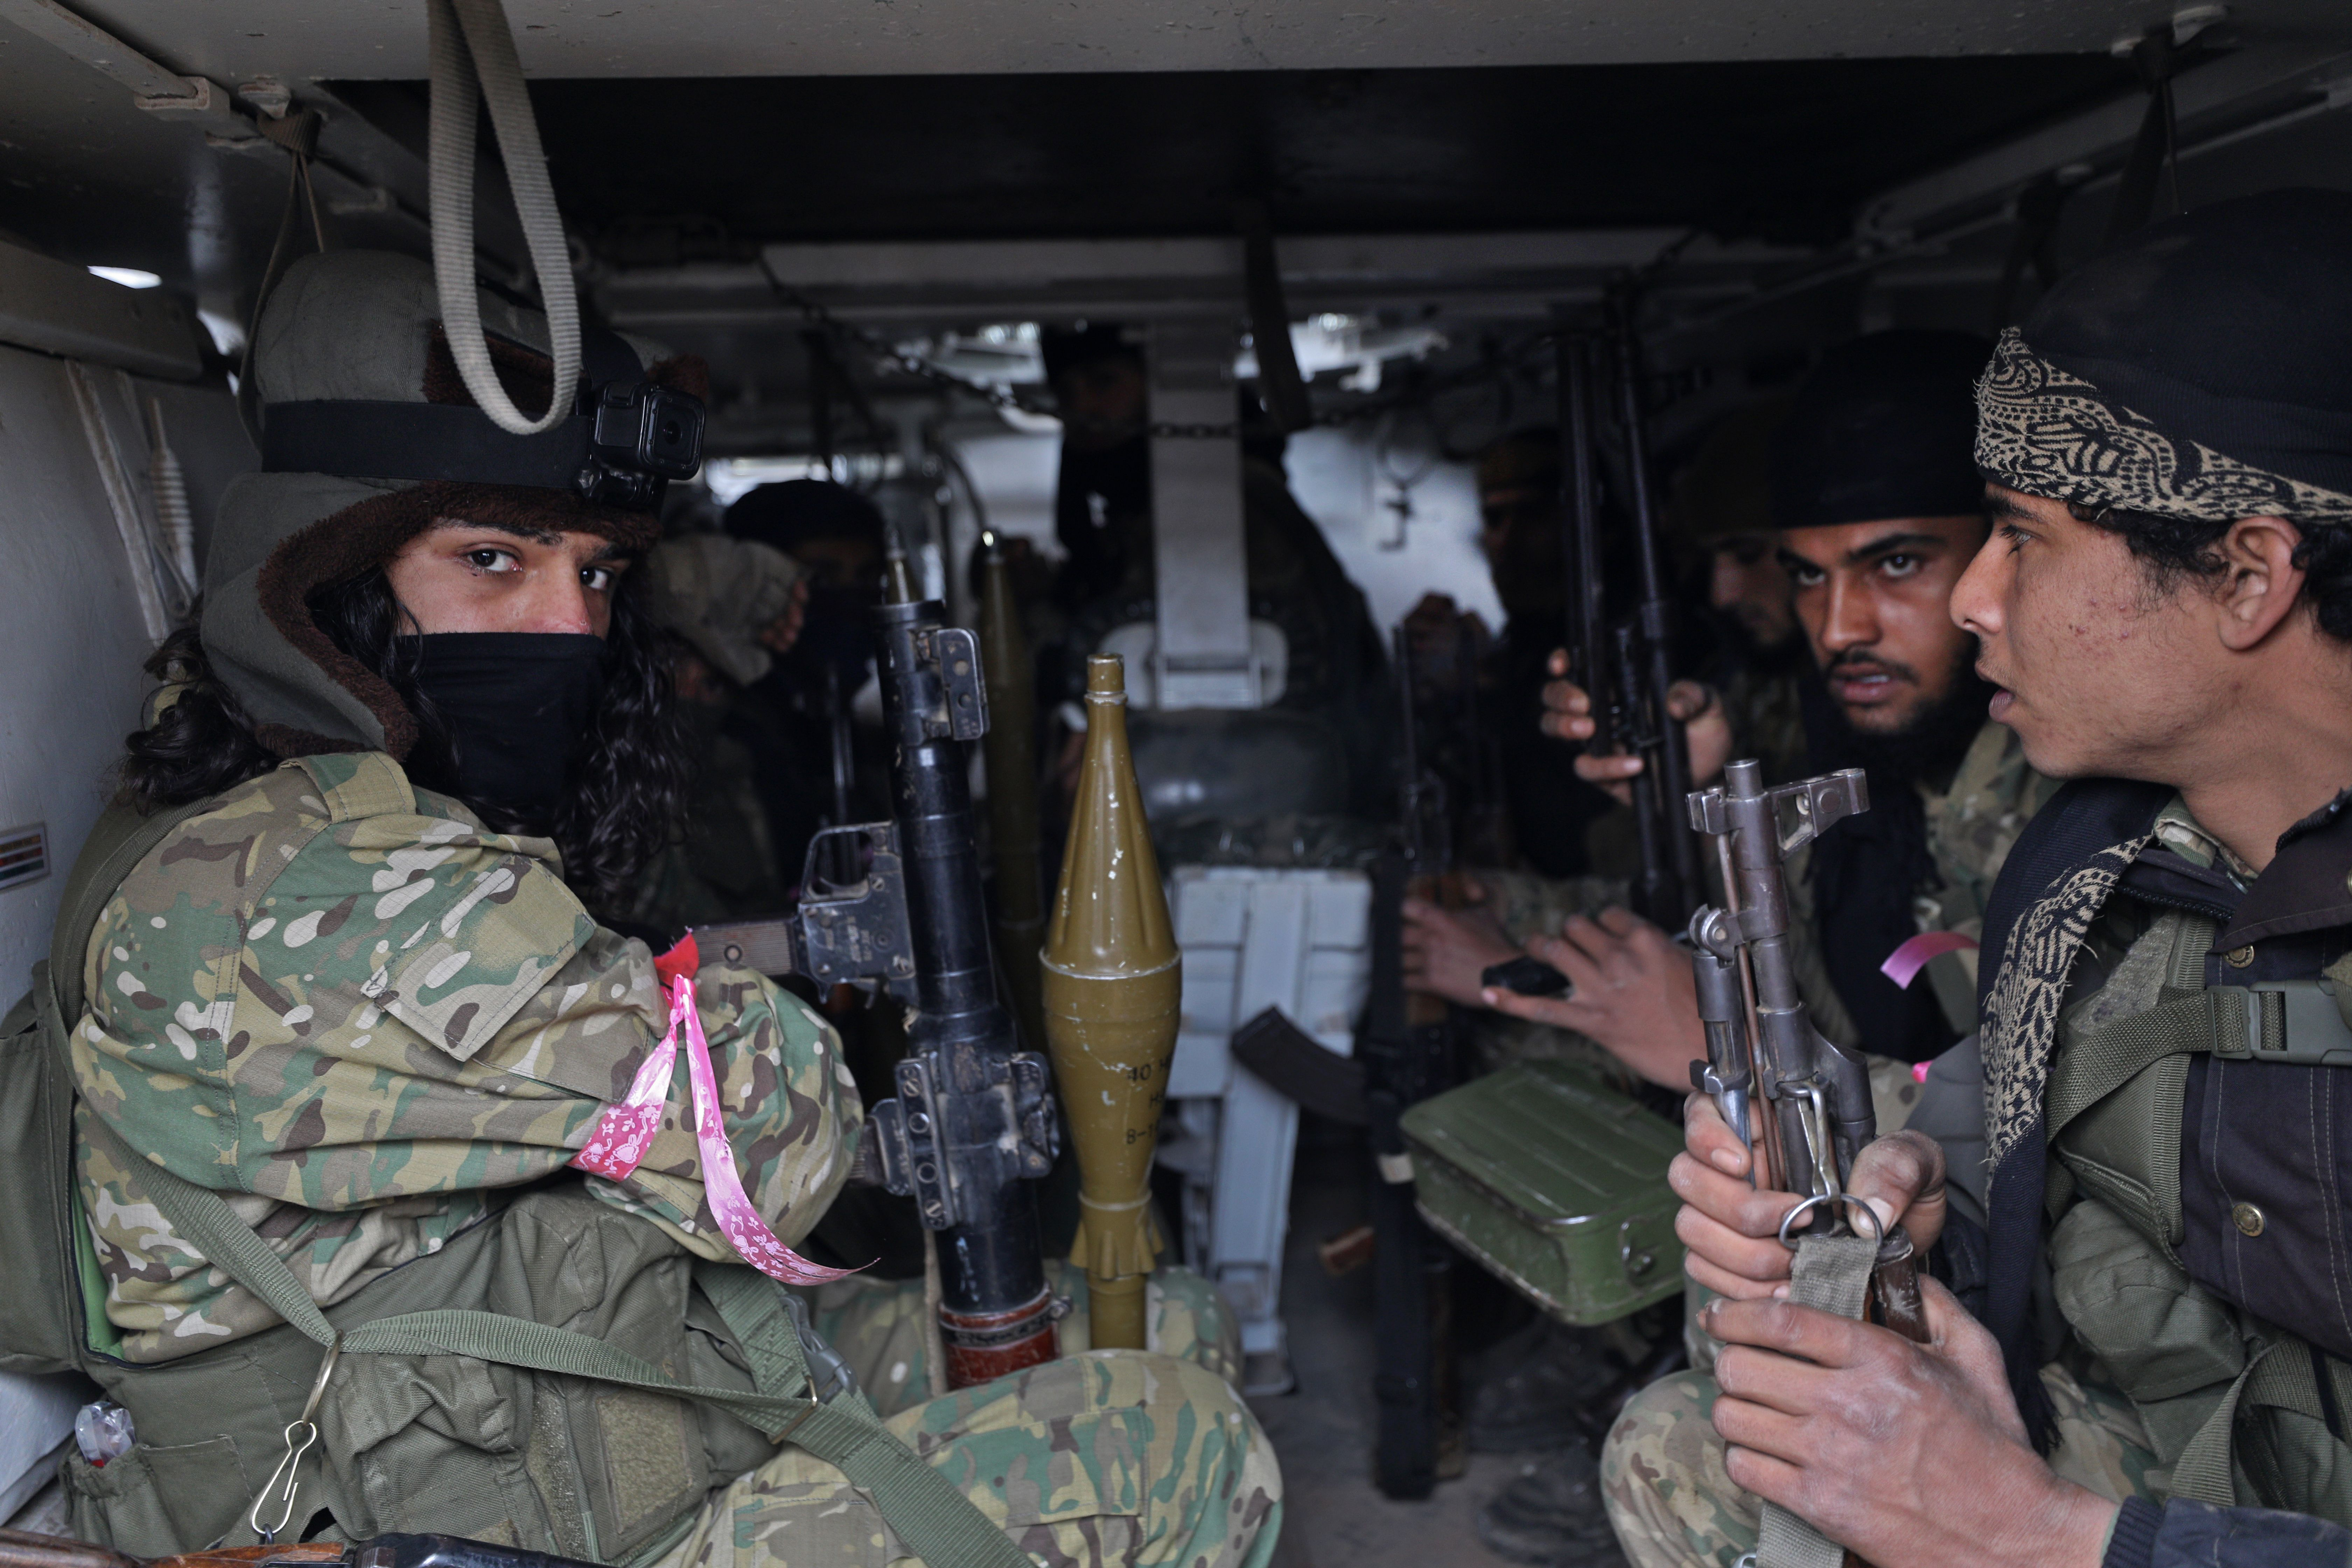 "Members of the ""Syrian National Army"", an alliance of Turkey-backed rebel groups, ride in an armoured personnel carrier (APC) in the town of Sarmin, about 8 kilometres southeast of the city of Idlib in northwestern Syria, on February 24, 2020, as they take part in a military offensive on the village of Nayrab following an artillery barrage fired by Turkish forces. (Photo by OMAR HAJ KADOUR/AFP via Getty Images)"